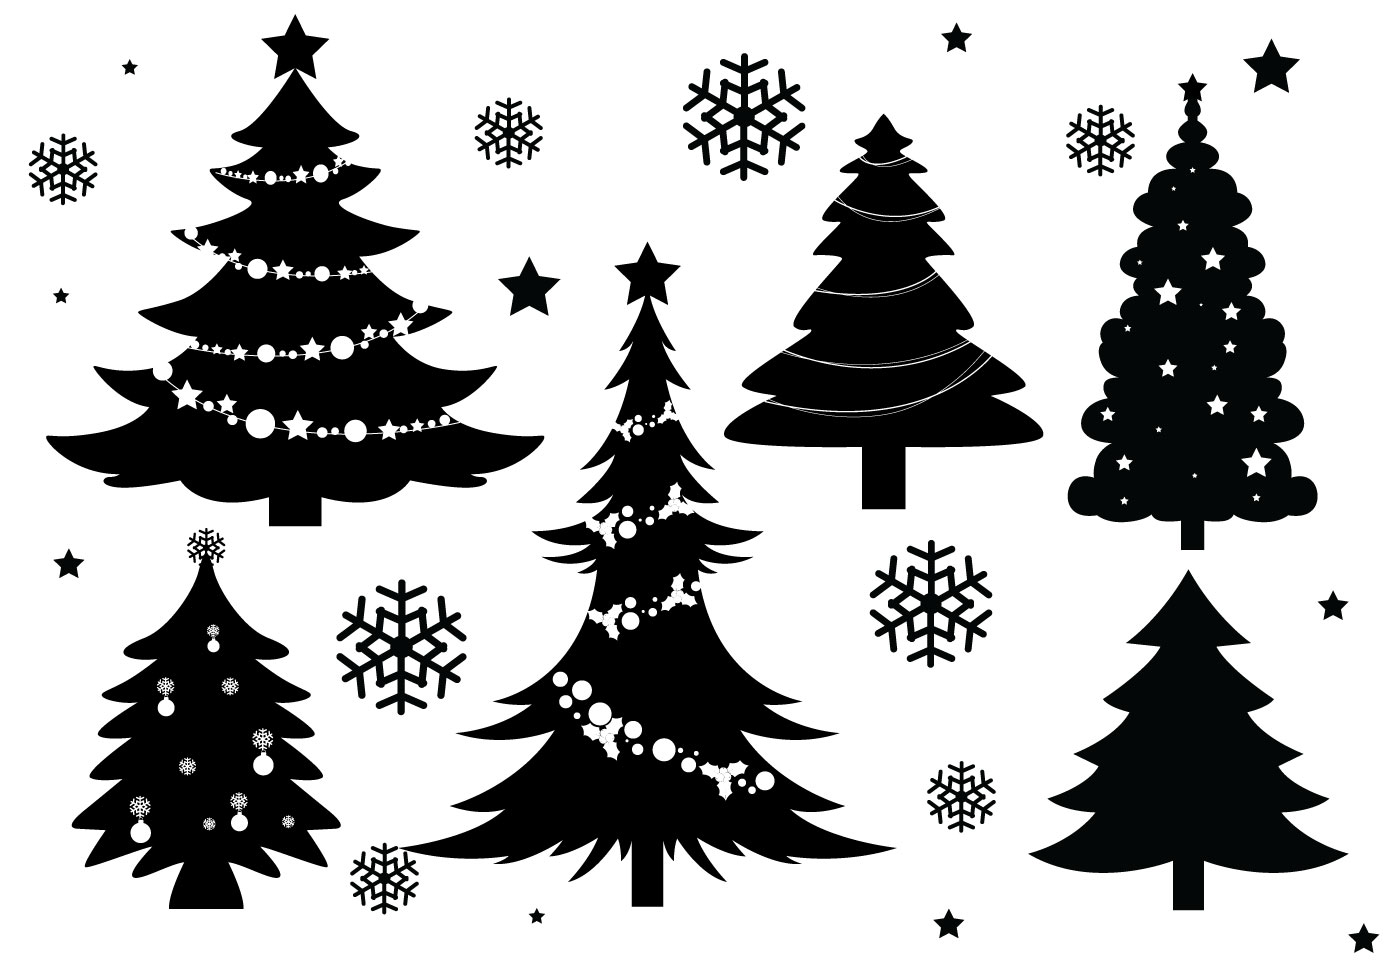 Free vector christmas clipart in black and white clip art freeuse download Christmas Tree Silhouette Free Vector Art - (636 Free Downloads) clip art freeuse download